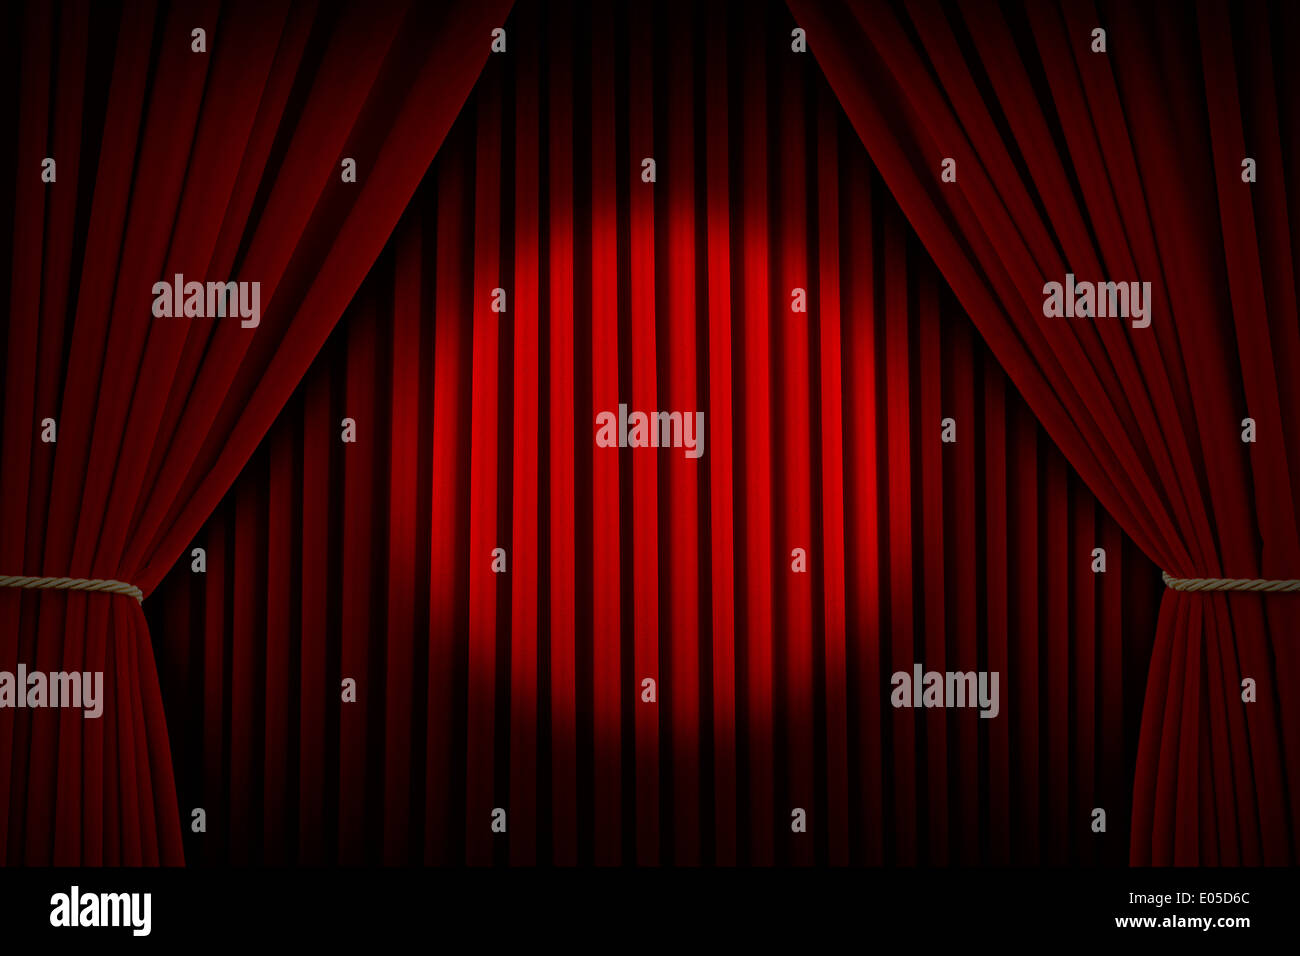 Red Velvet Stage Curtains with Center Spotlight. - Stock Image